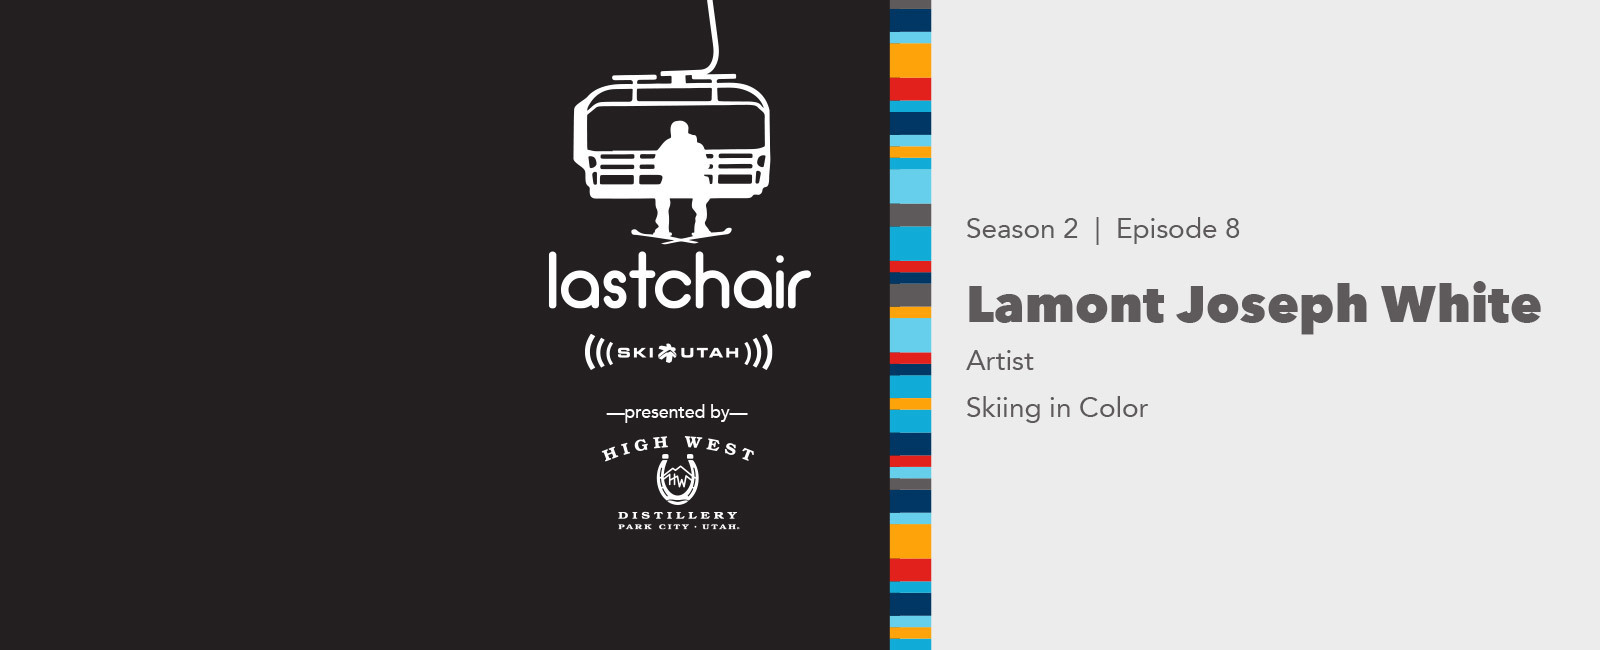 Lamont Joseph White: Skiing in Color